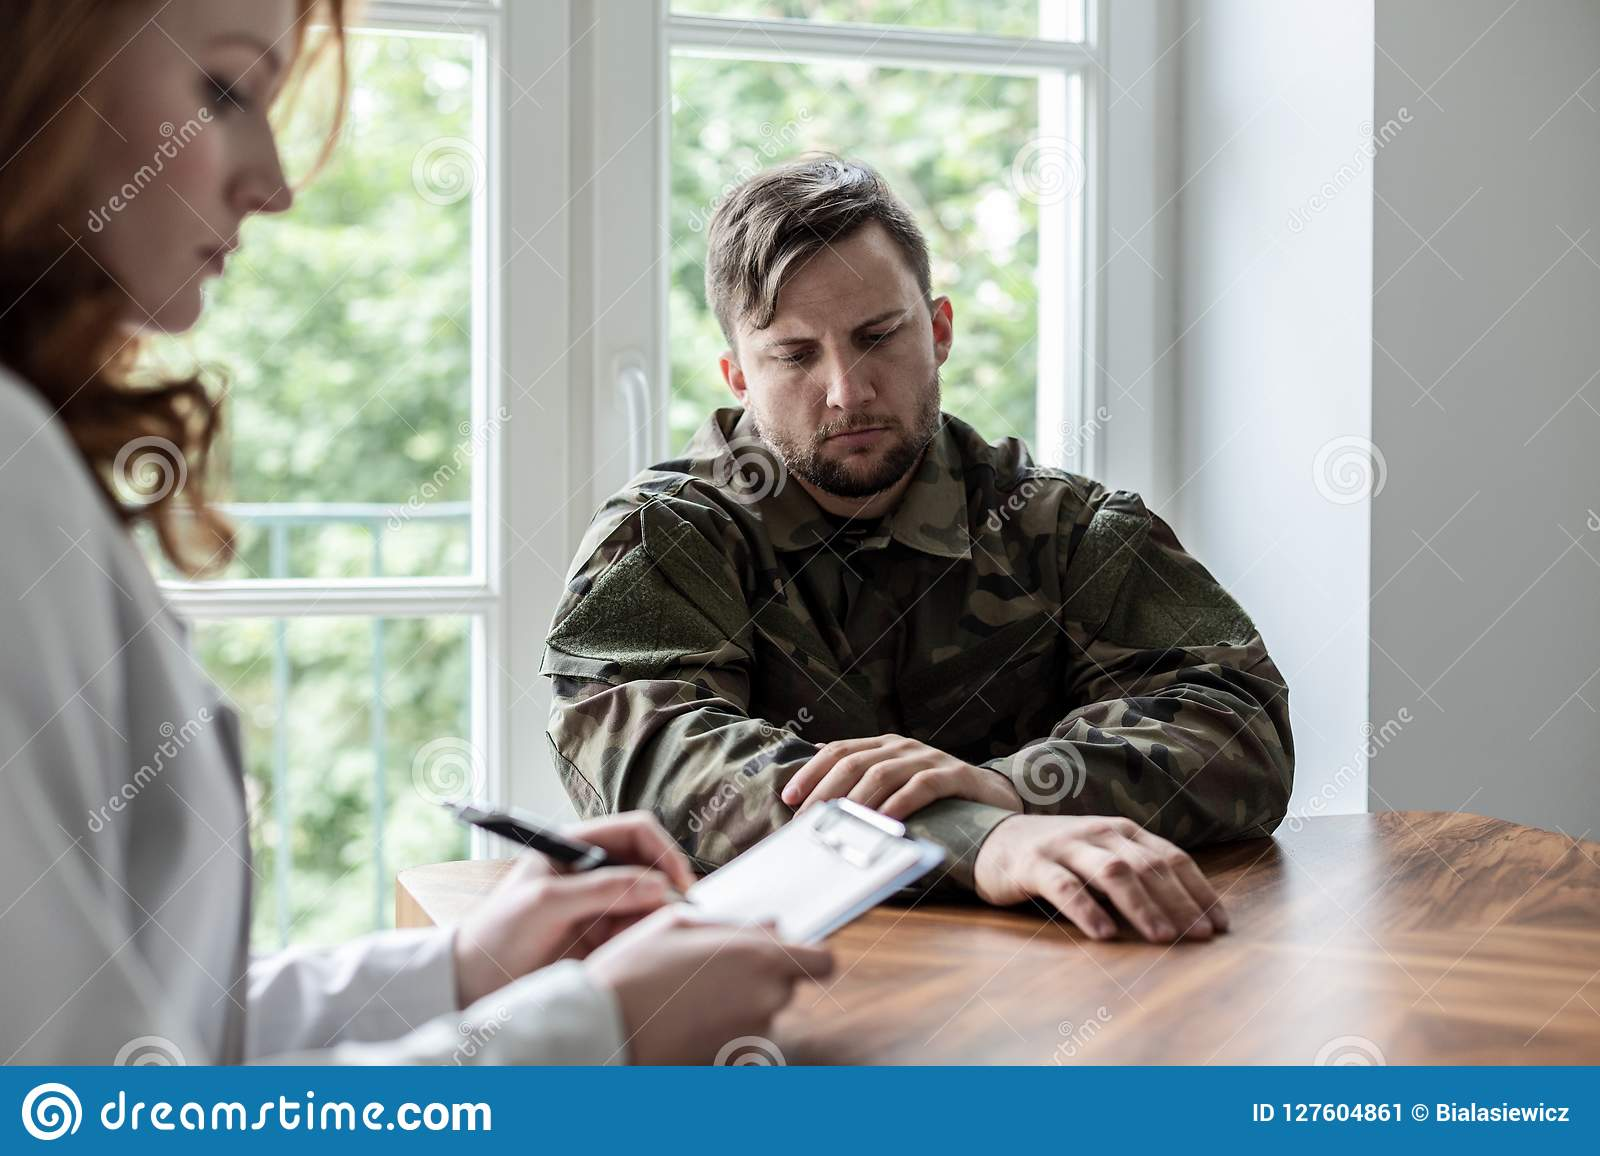 Sad soldier with depression and war syndrome during therapy with psychiatrist